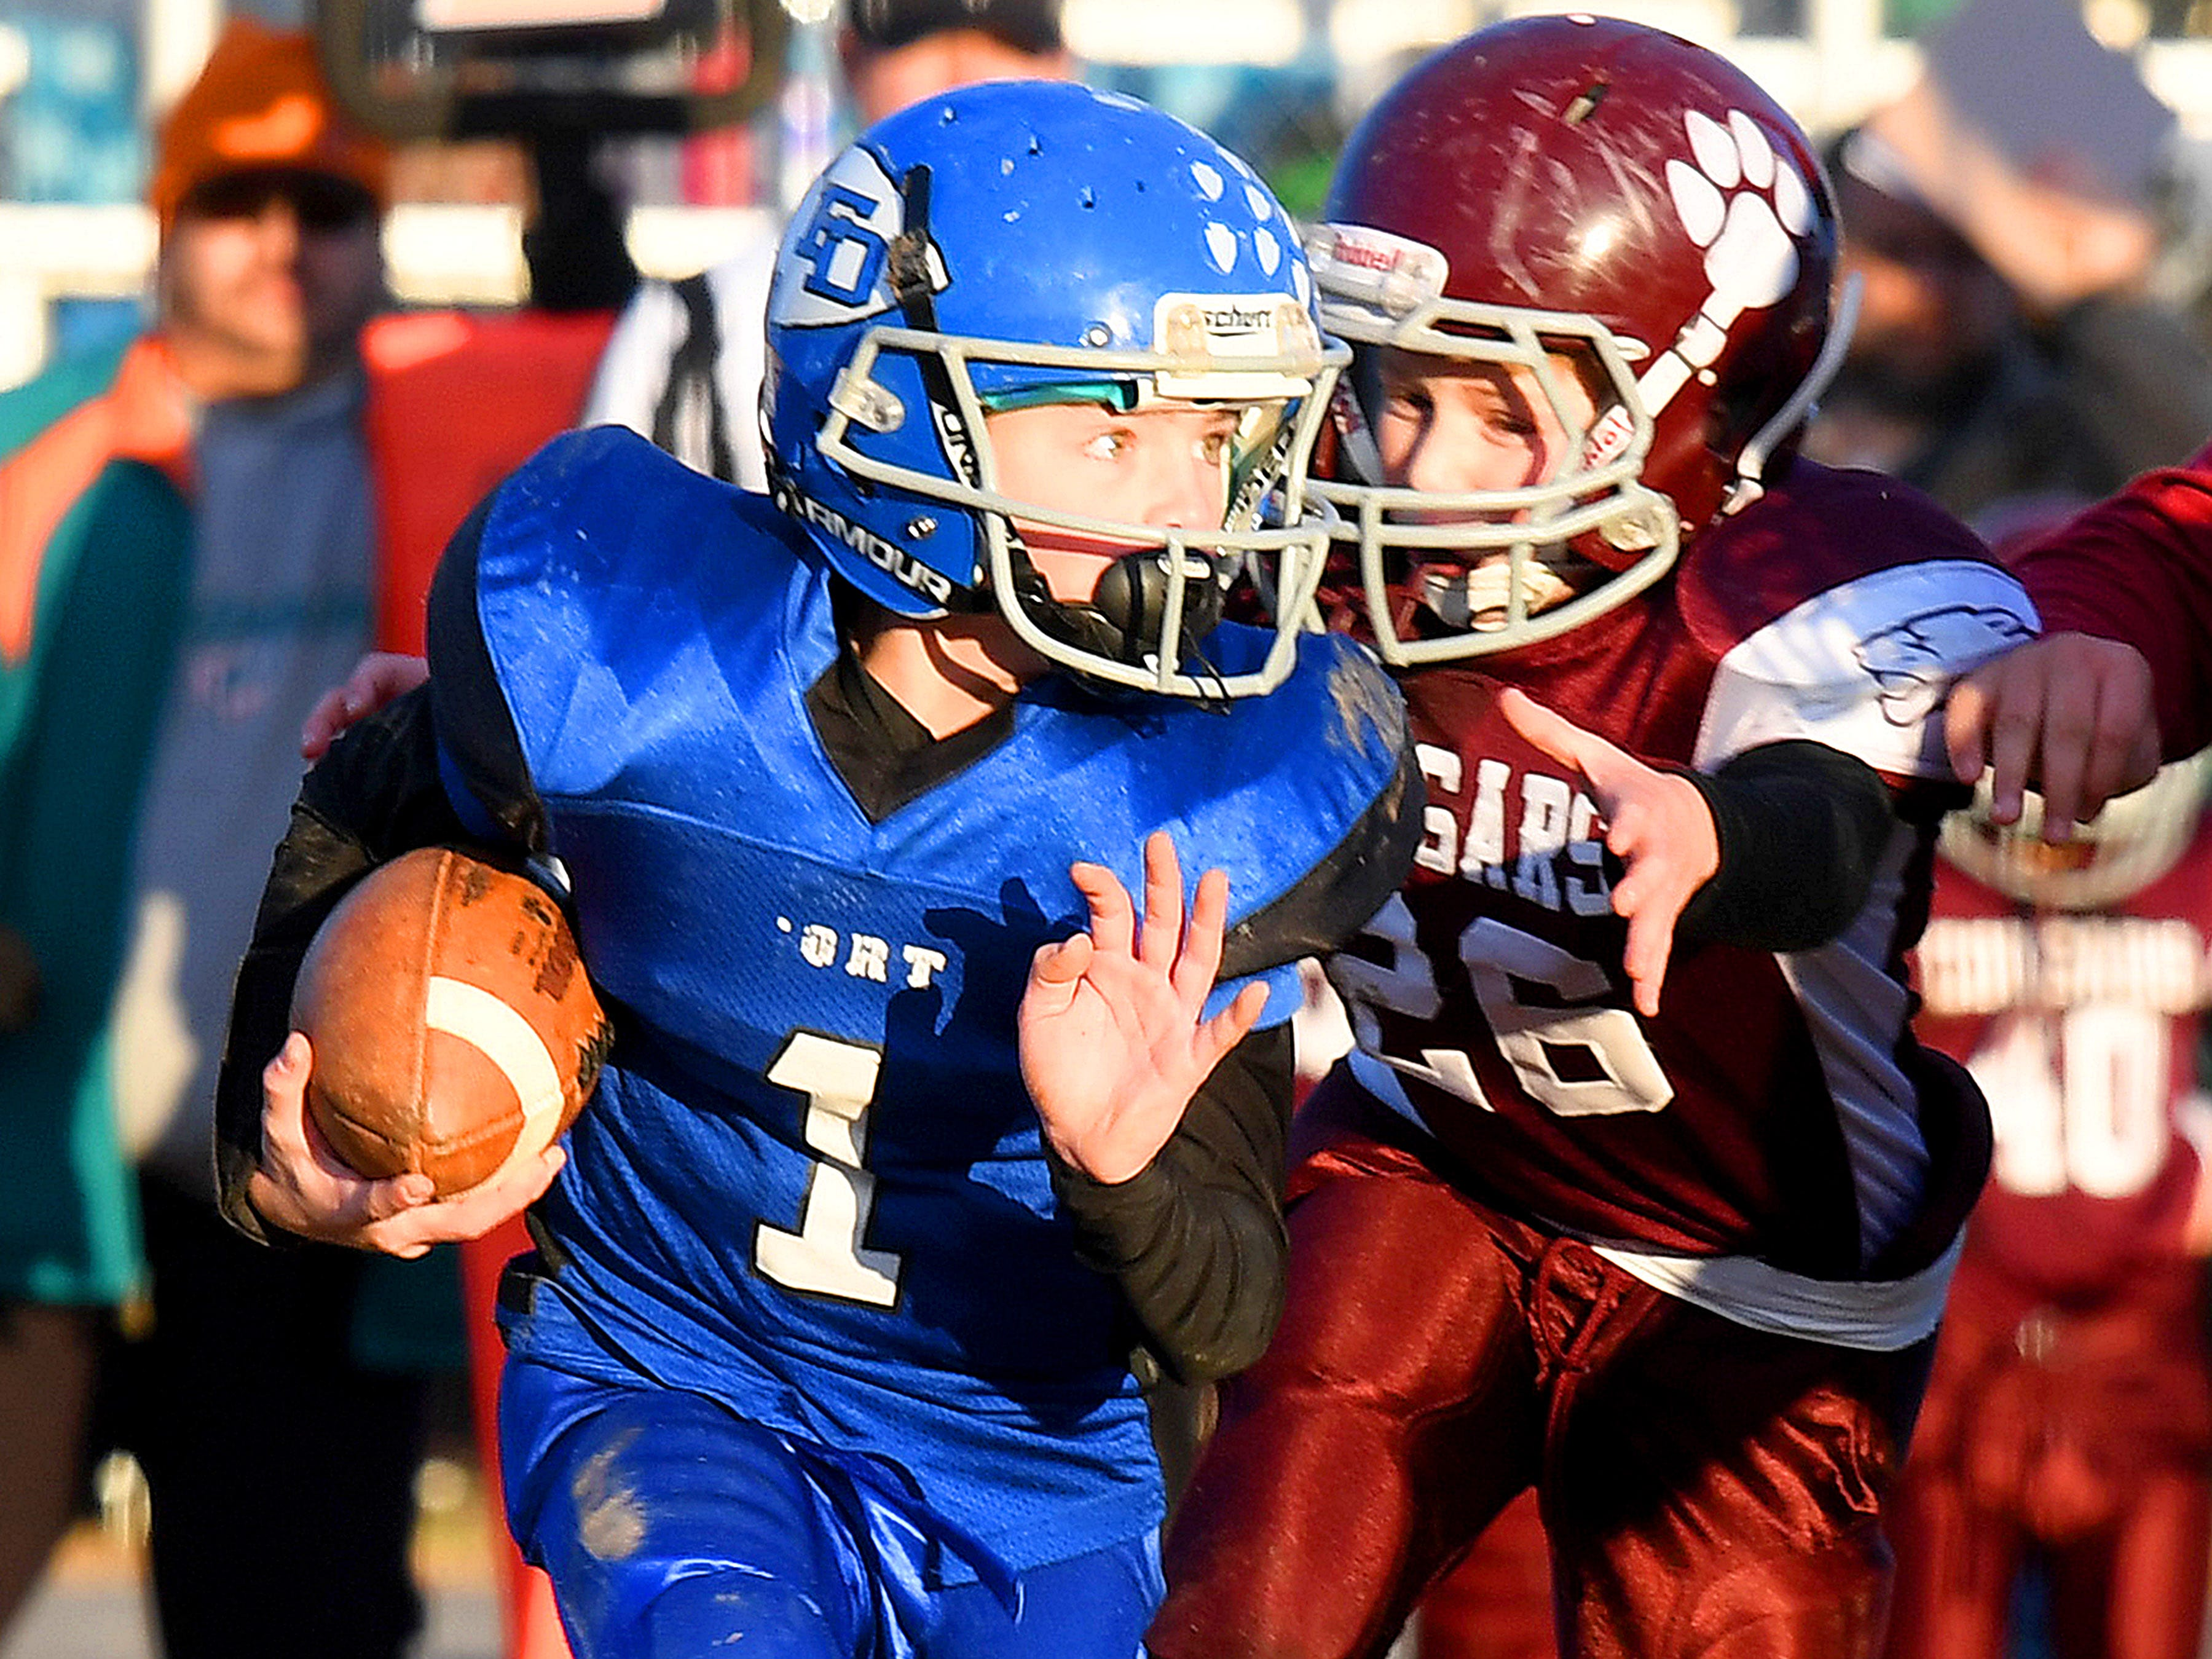 Fort Defiance's Bradley Hebb runs the football as Stuarts Draft's Ryan Ramsey goes for a tackle during the Augusta County Quarterback Club Juniors Super Bowl in Fishersville on Sunday, Nov. 11, 2018.  Fort Defiance beats Stuarts Draft, 13-12.